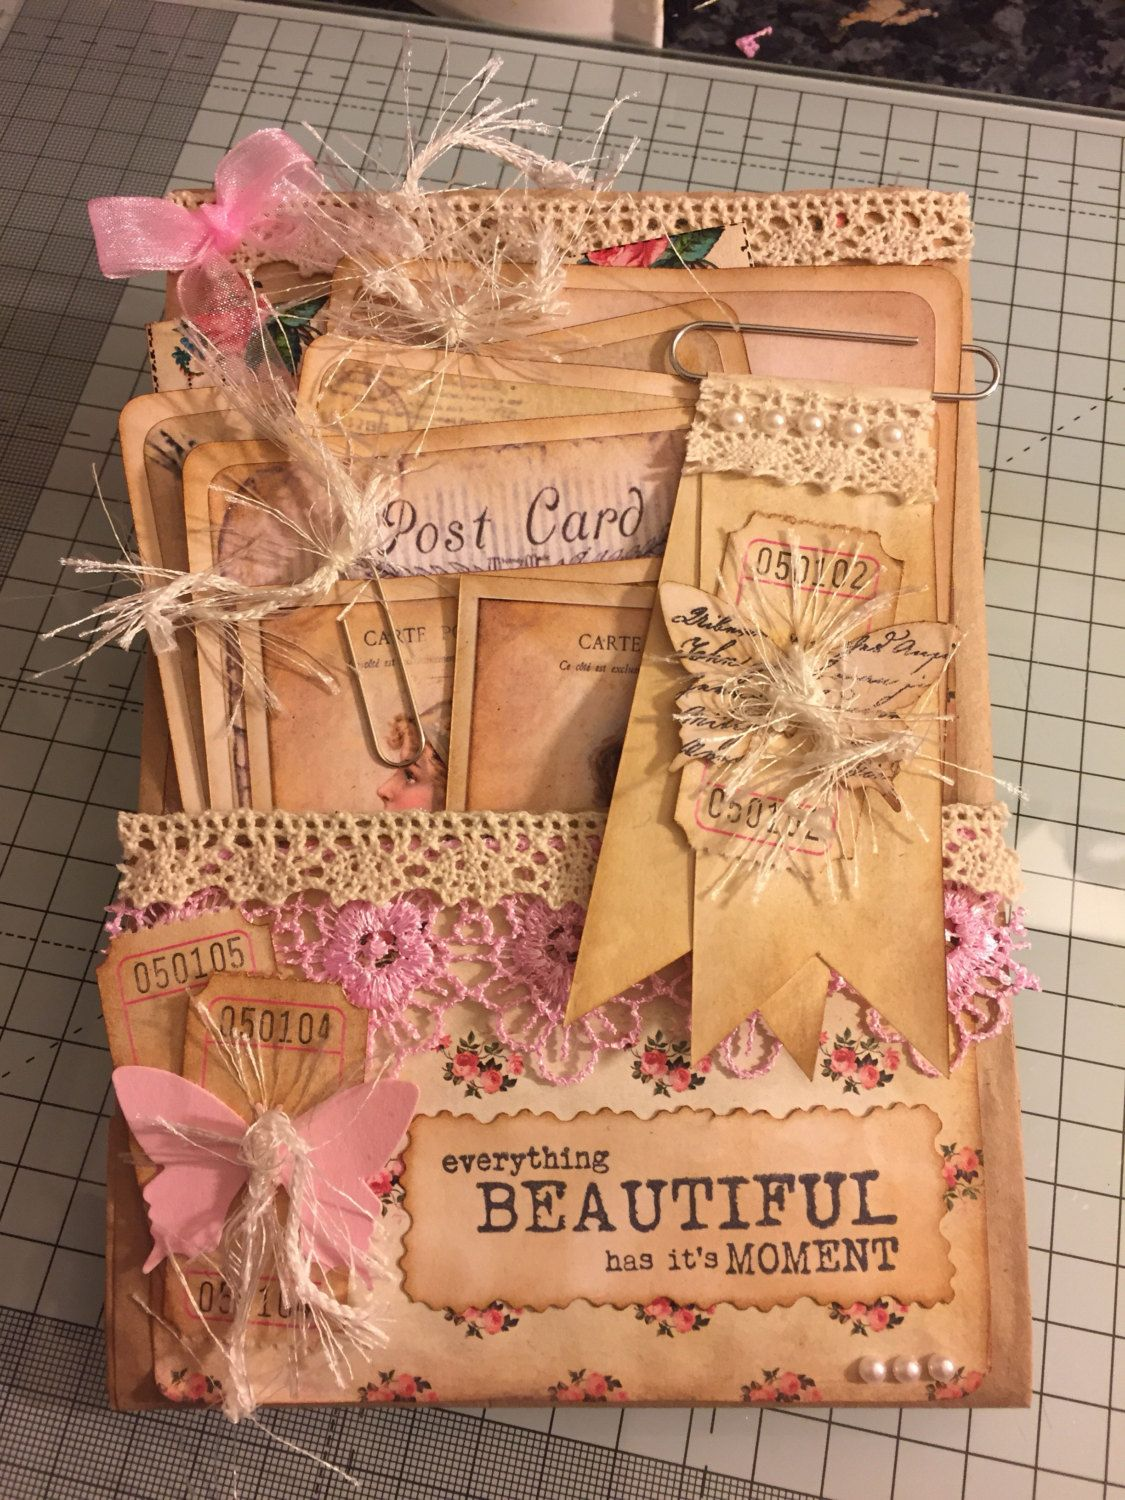 Handmade Altered Paper Bag And Envelope Decorated In A